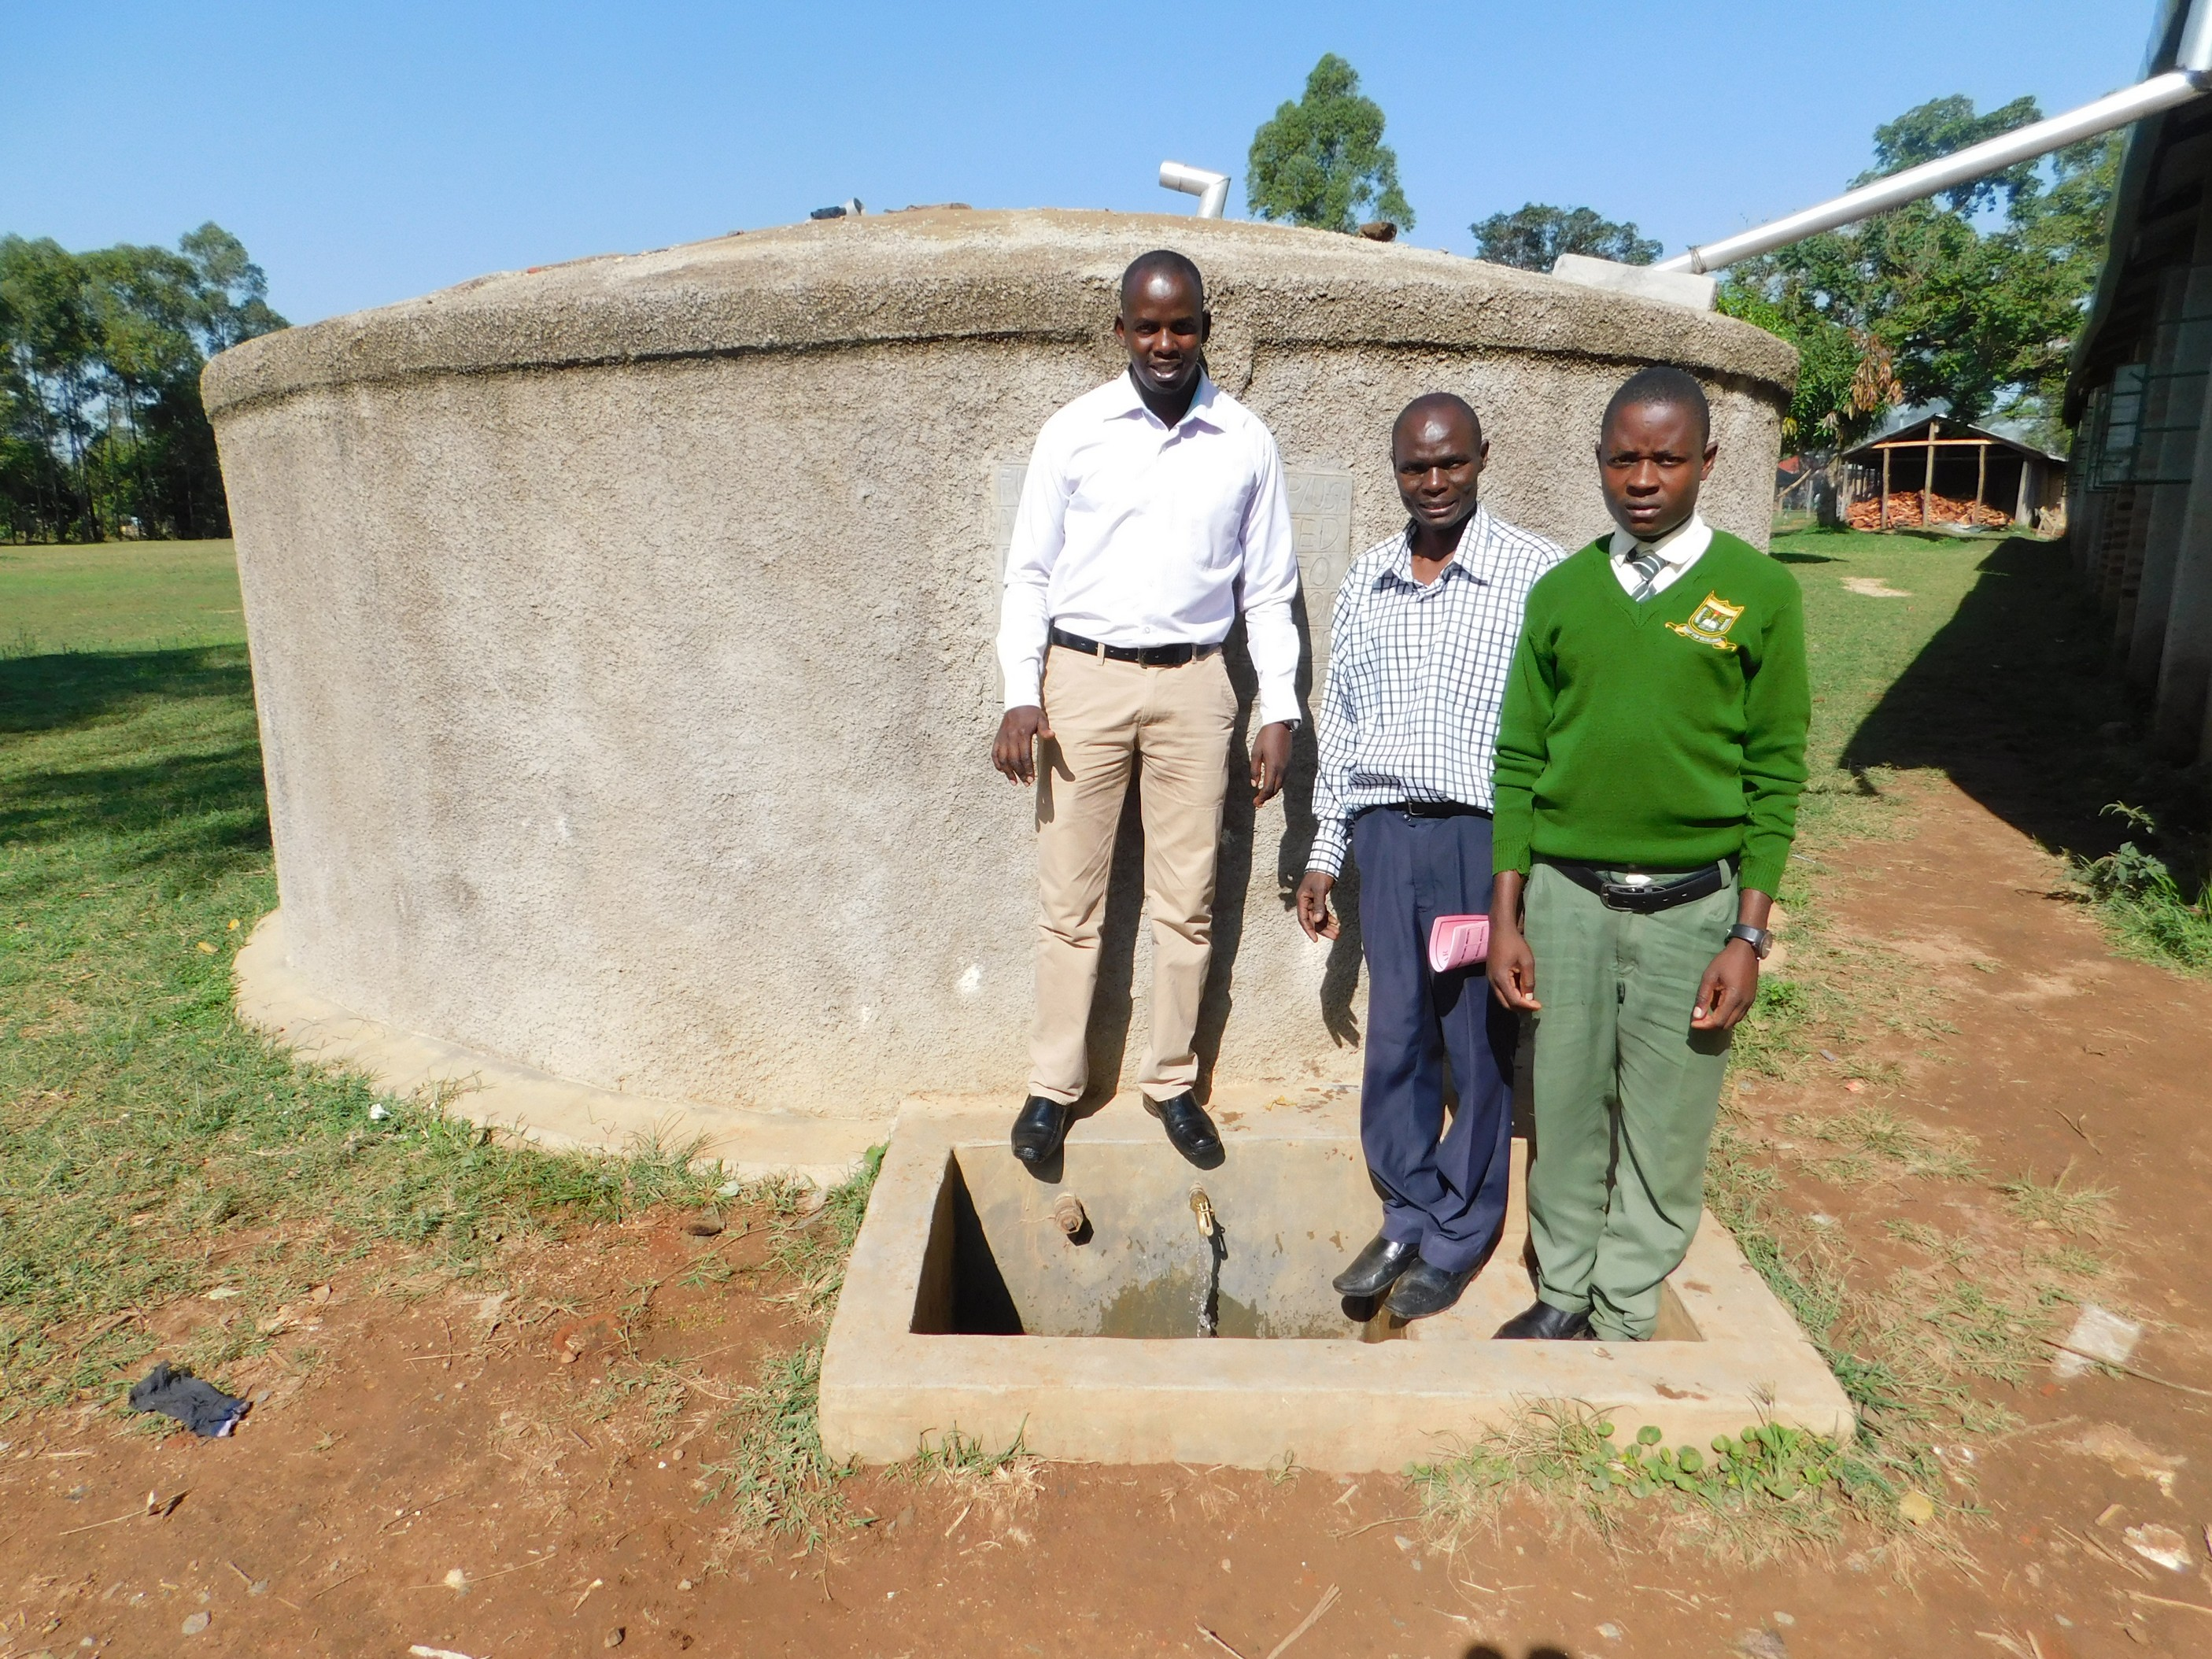 The Water Project : 1-kenya18048-field-officer-jonathan-deputy-principal-titus-wanyama-and-student-julius-oyemba